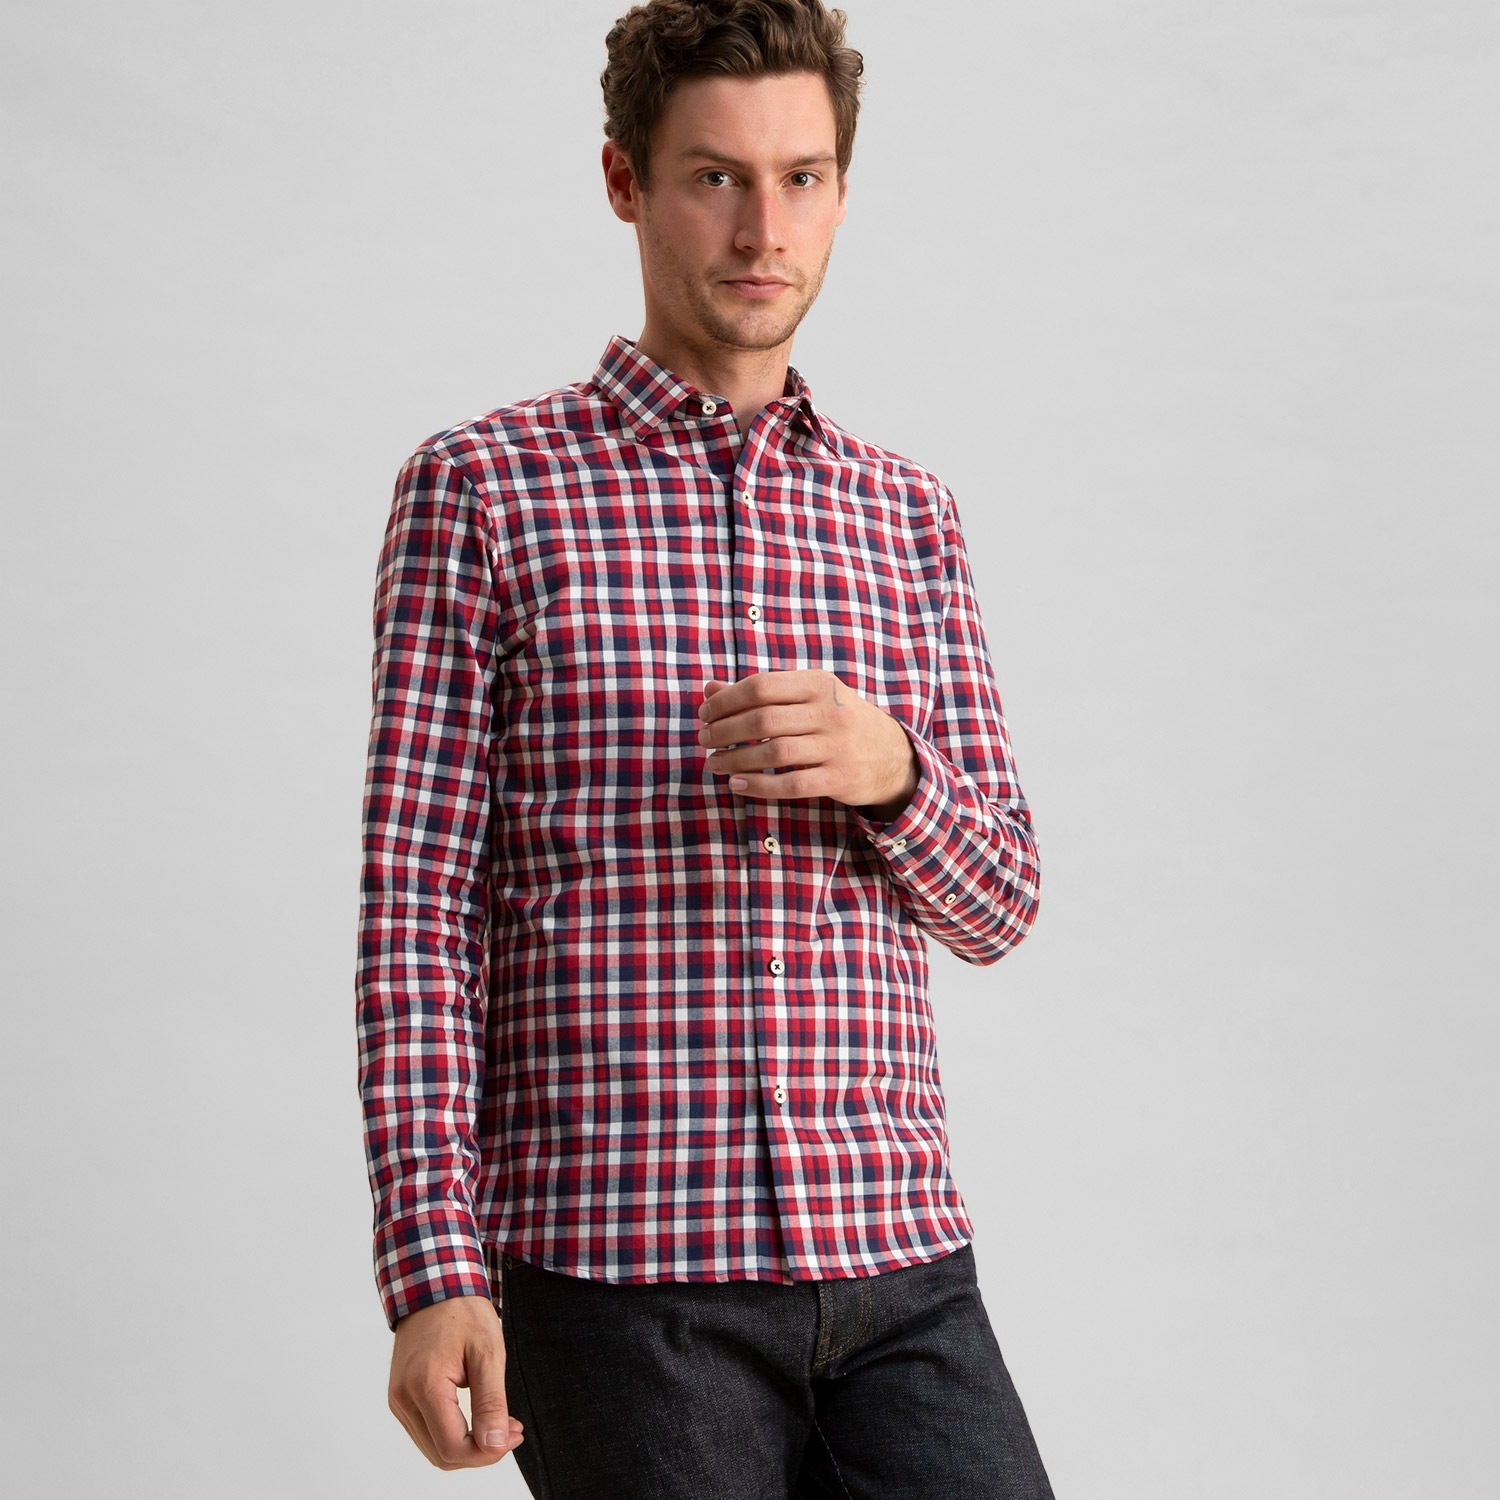 The Colorado Pinpoint Oxford